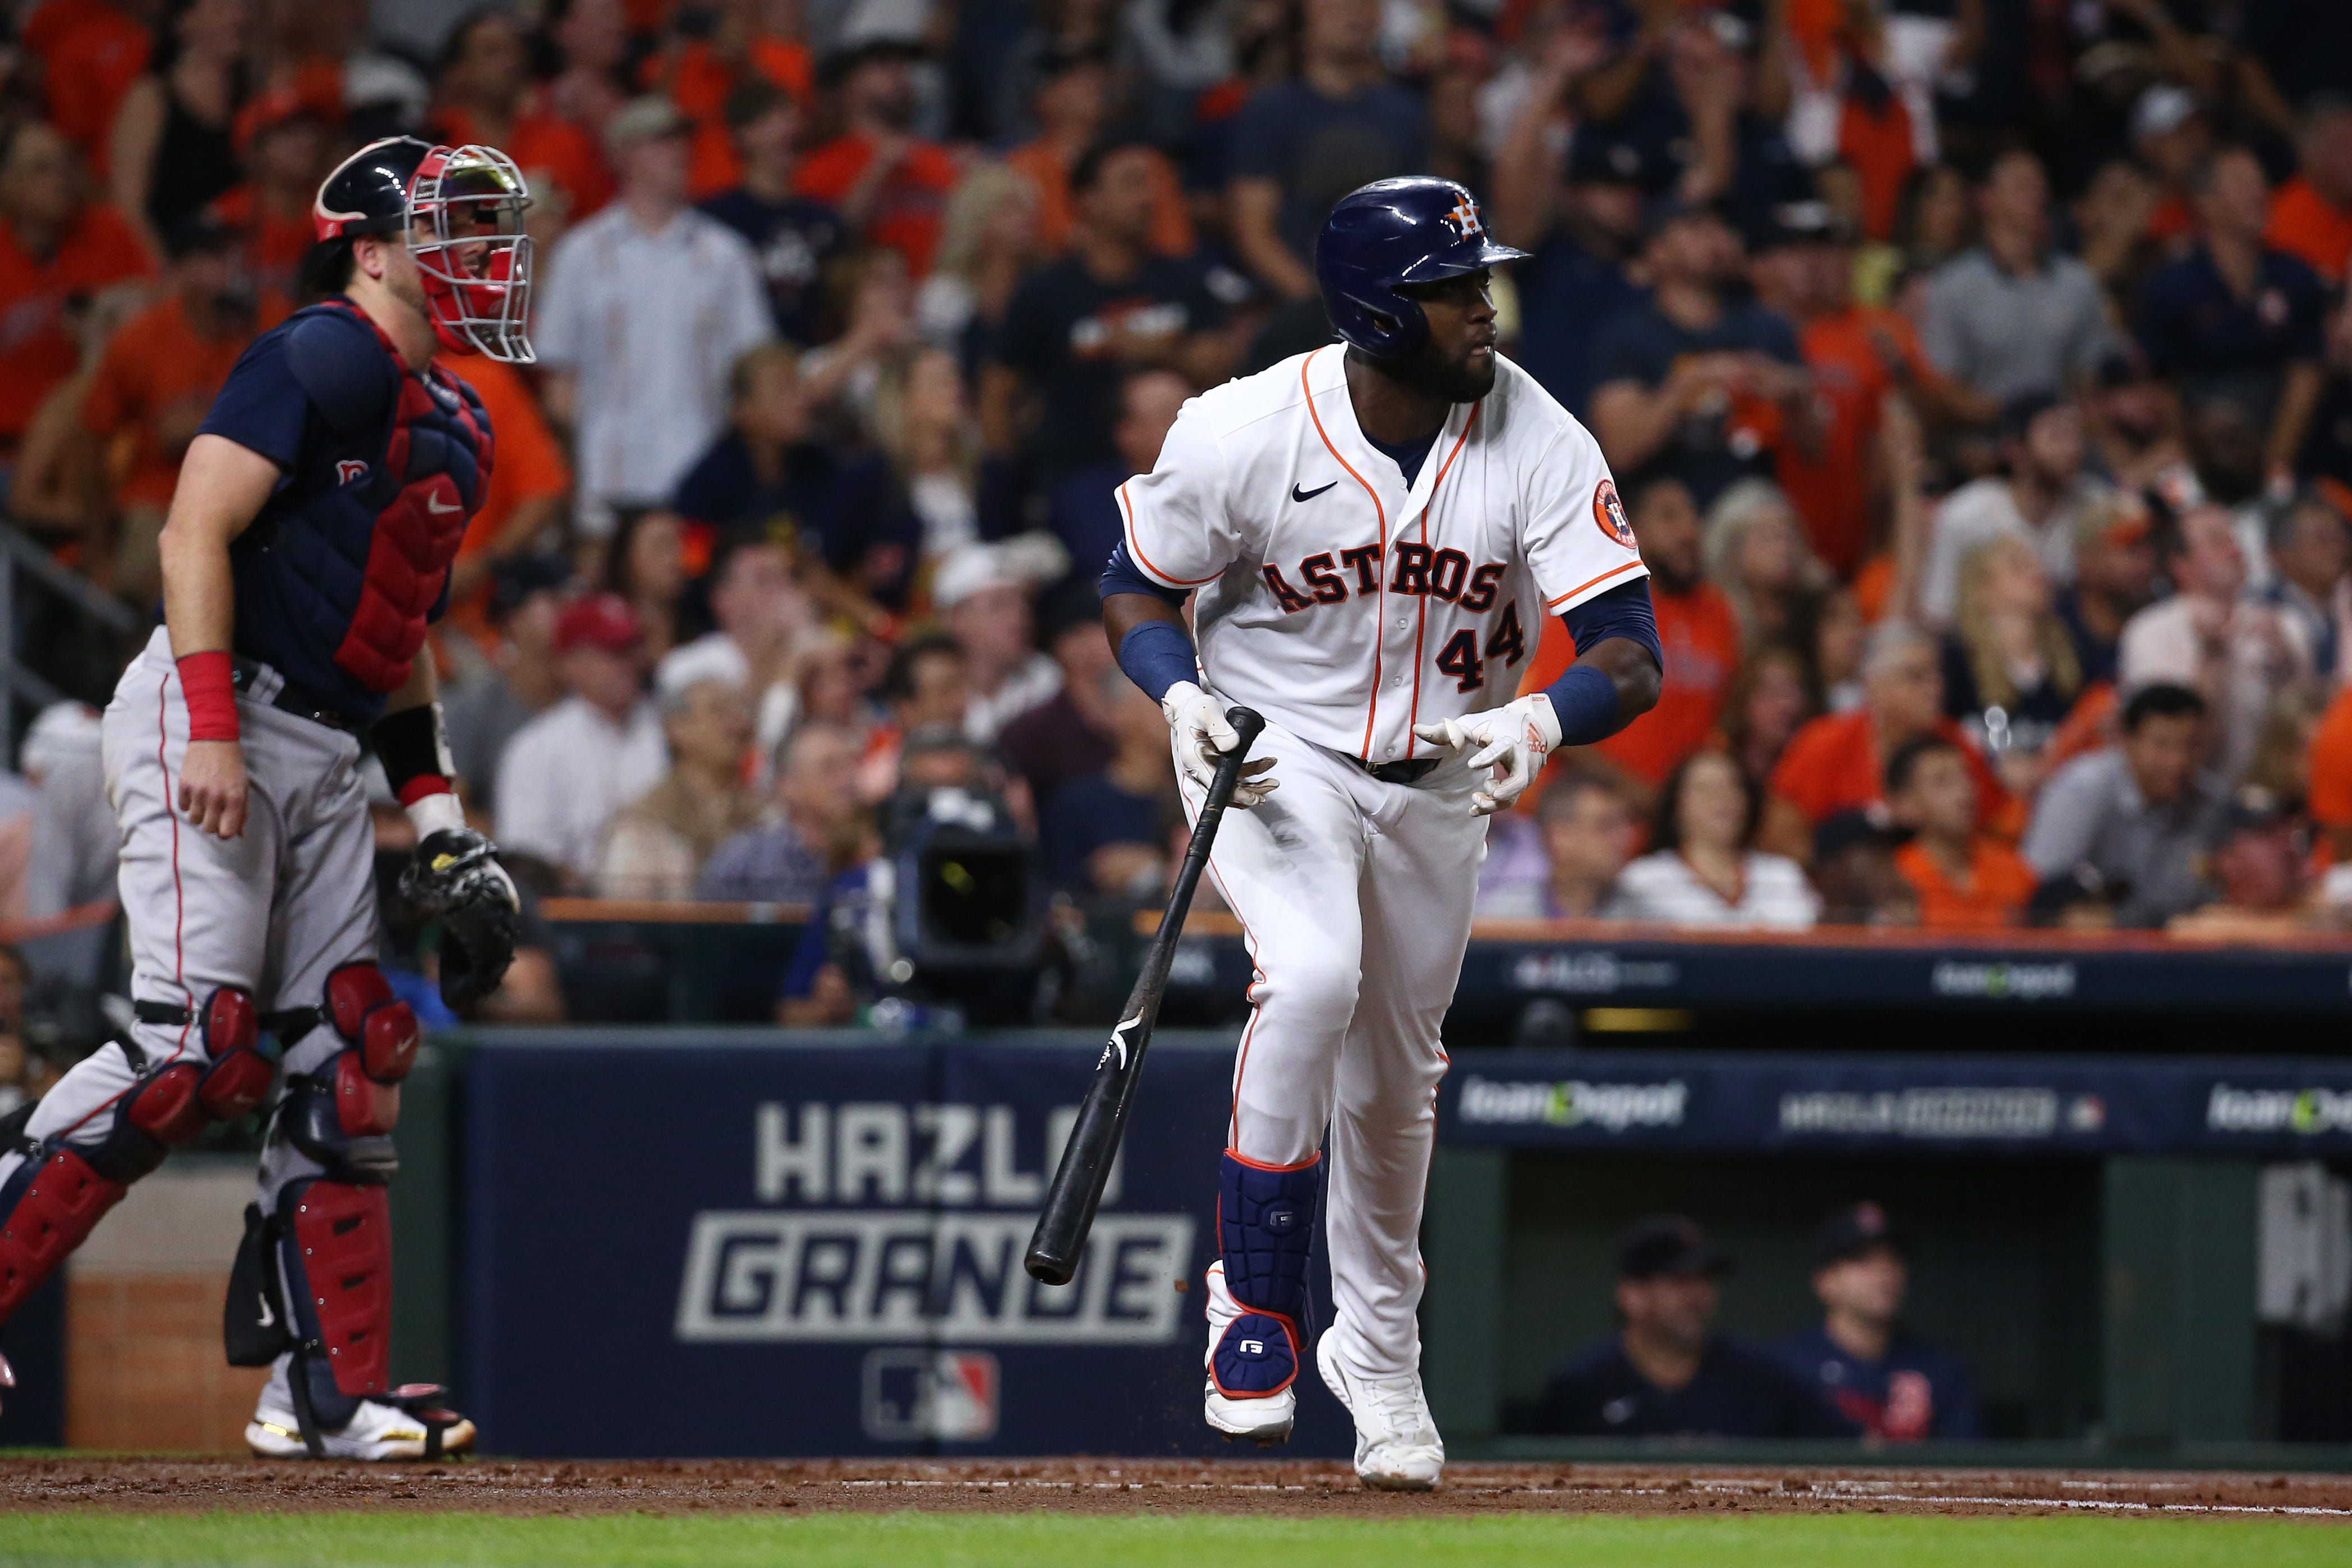 Because of them, we re here now : Astros  young stars, led by Yordan Alvarez, lead old guard back to World Series